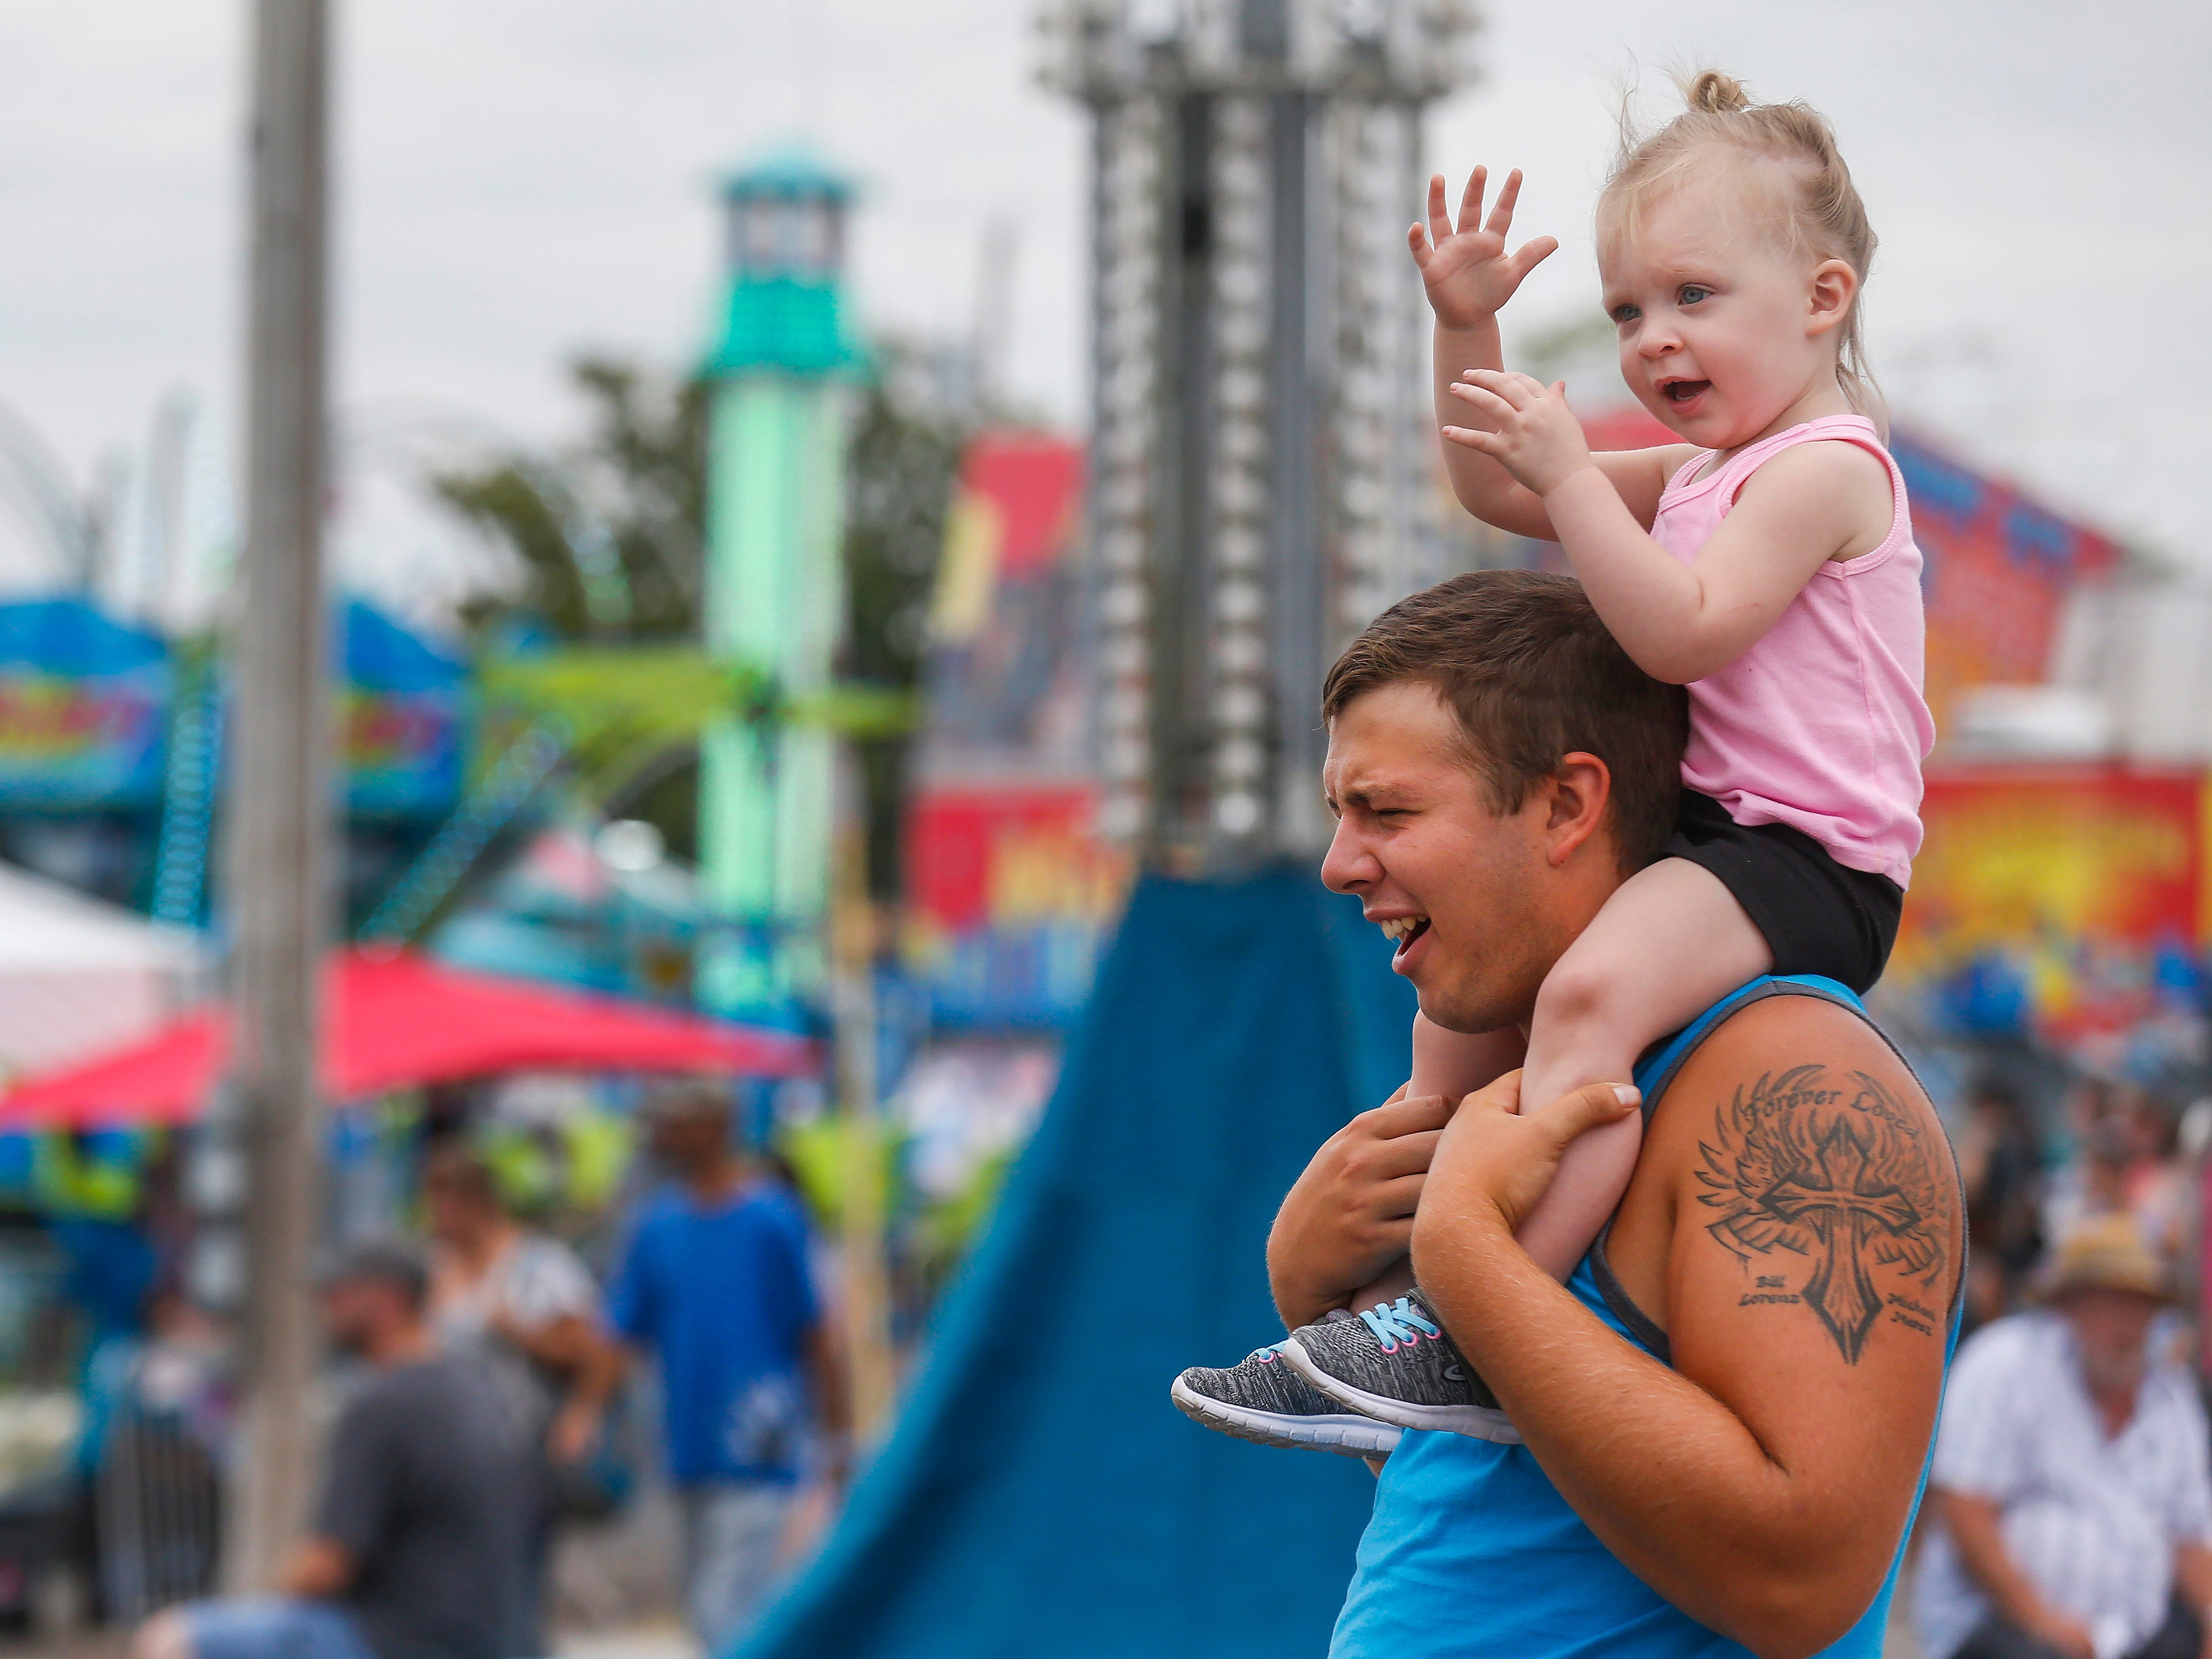 Dakota Lorenz, of Buffalo, reacts as his daughter Callie Barnes, 2, slaps his head at the Ozark Empire Fair on Saturday, July 28, 2018.